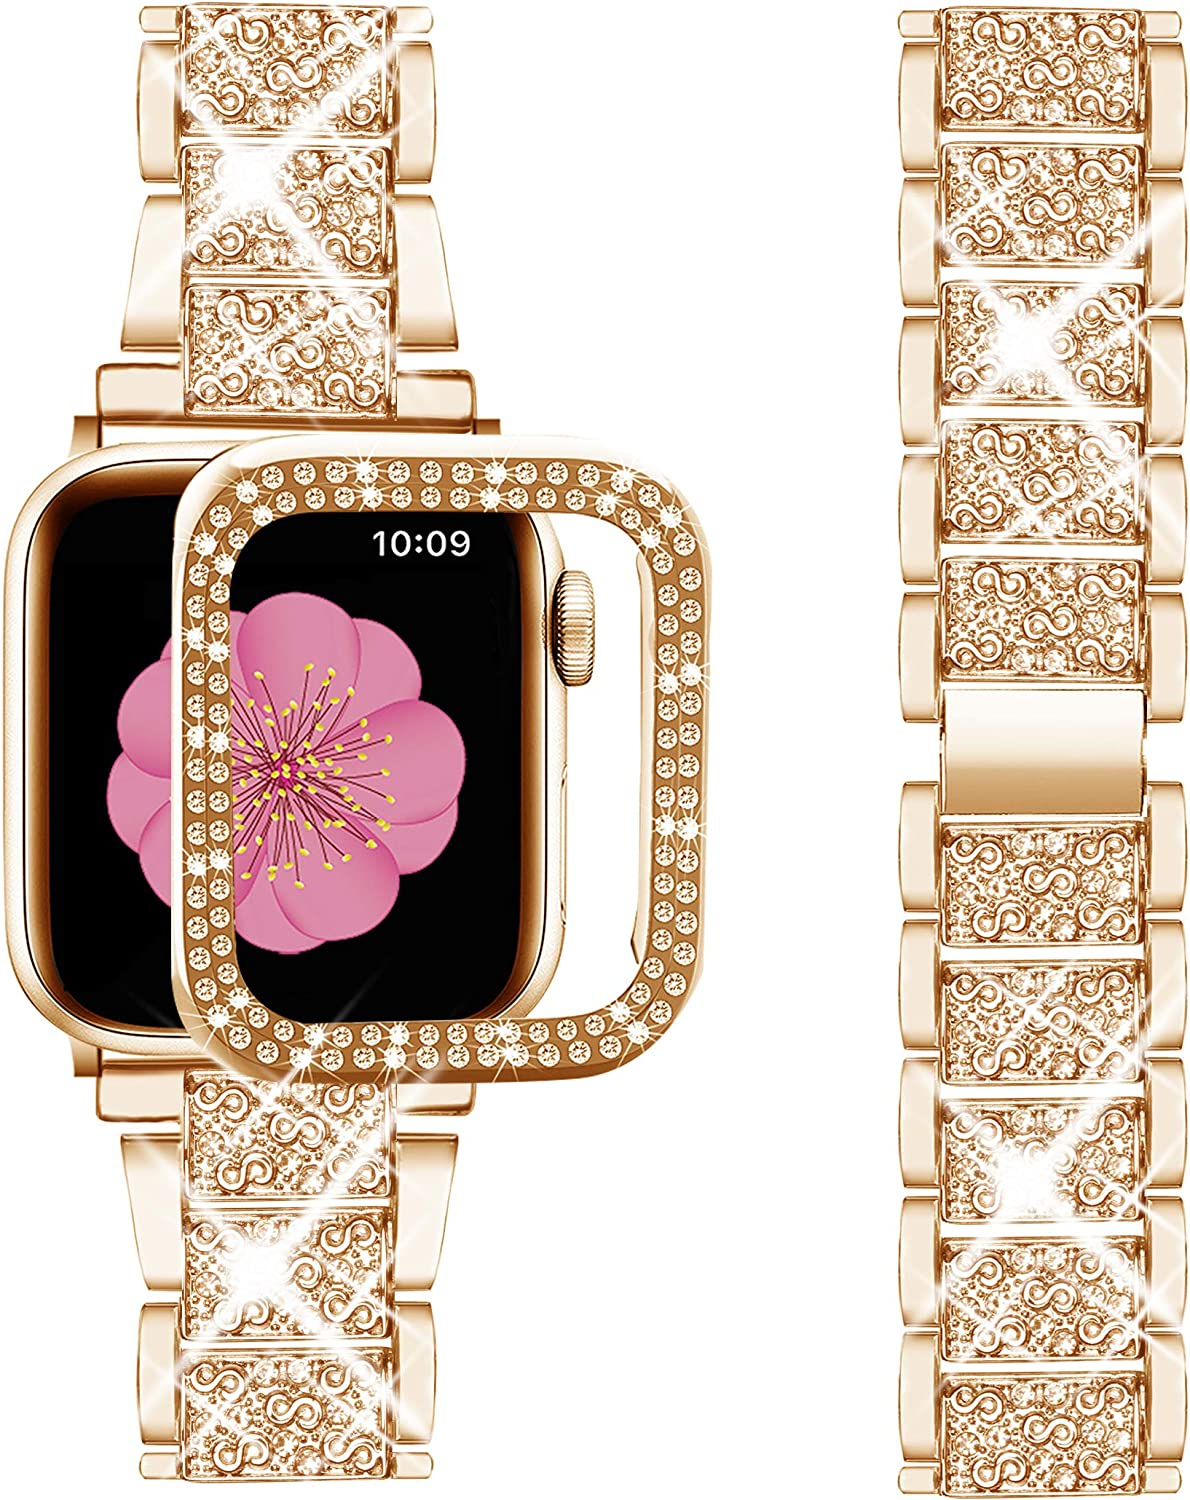 Supoix Compatible with Apple Watch Band 40mm + Case, Women Jewelry Bling Diamond Metal Strap & 2 Pack Bumper Frame Screen Protector for iWatch Series 6/5/4(Rose Gold/40mm)